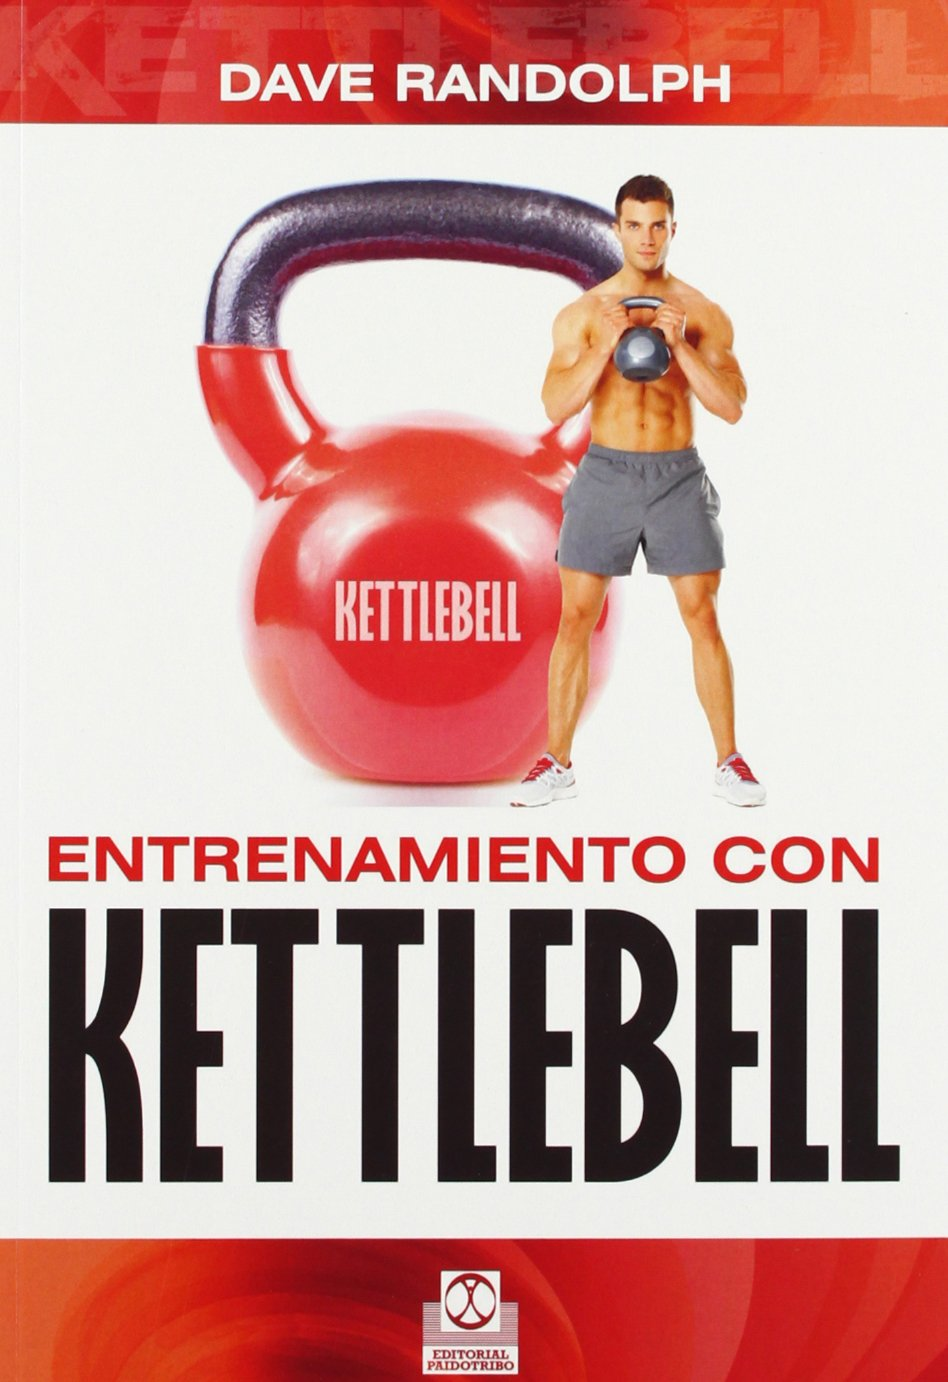 ENTRENAMIENTO CON KETTLEBELL (Spanish Edition) (Spanish) Paperback – October 25, 2012